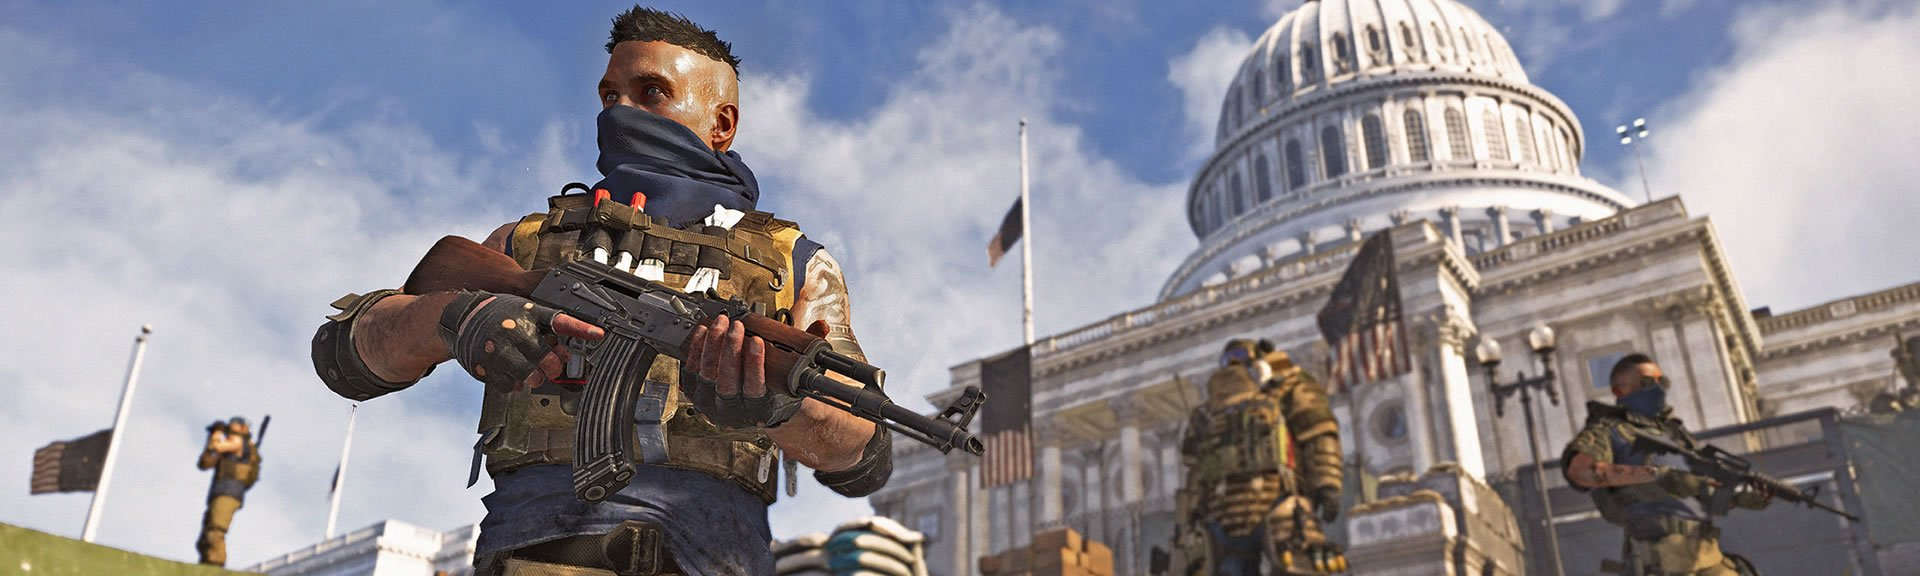 Tom Clancy's The Division 2 game guides - troubleshooting, bugs, and errors